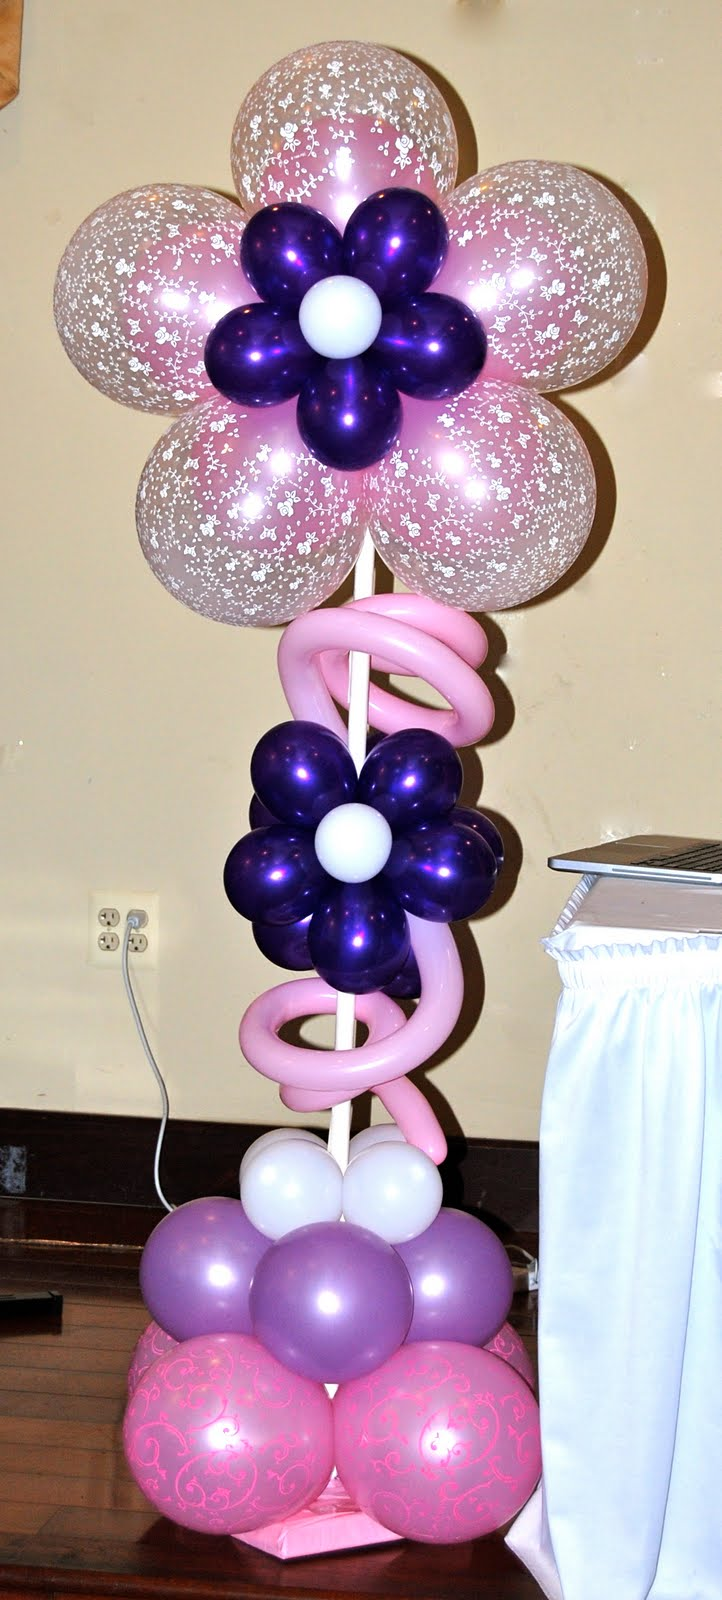 Korean 1st birthday dol decorations balloon decor for Balloon decoration for first birthday